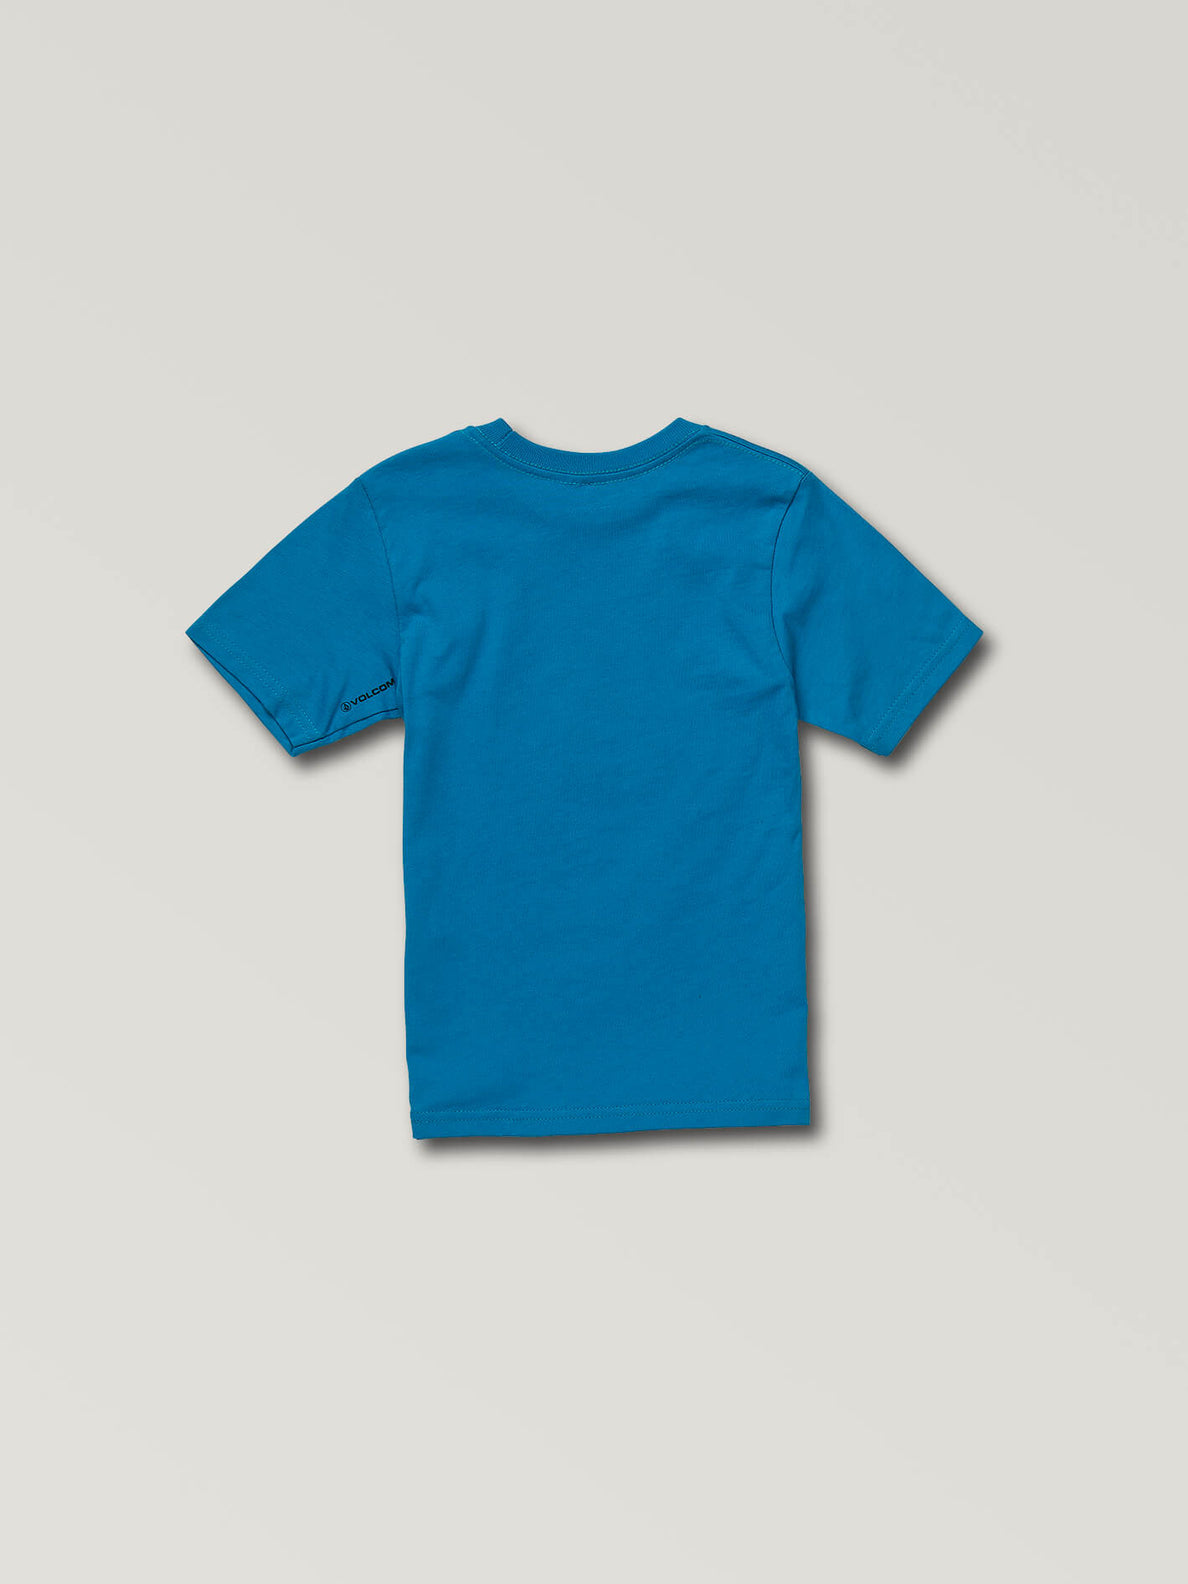 Little Boys Spray Stone Short Sleeve Tee In Bright Blue, Back View